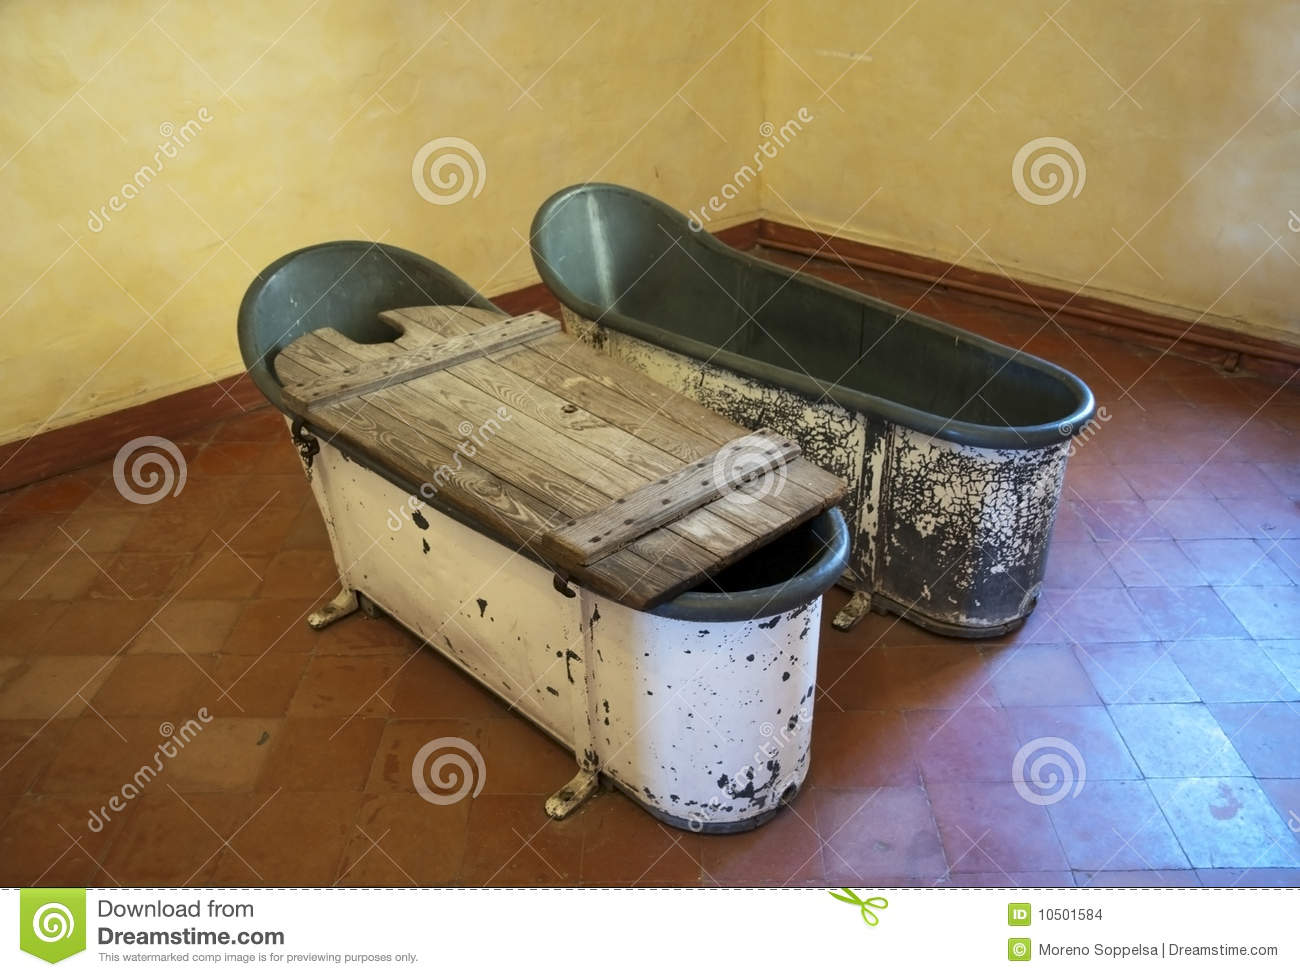 Old metal bathtubs stock photo. Image of room, wood, metal - 10501584